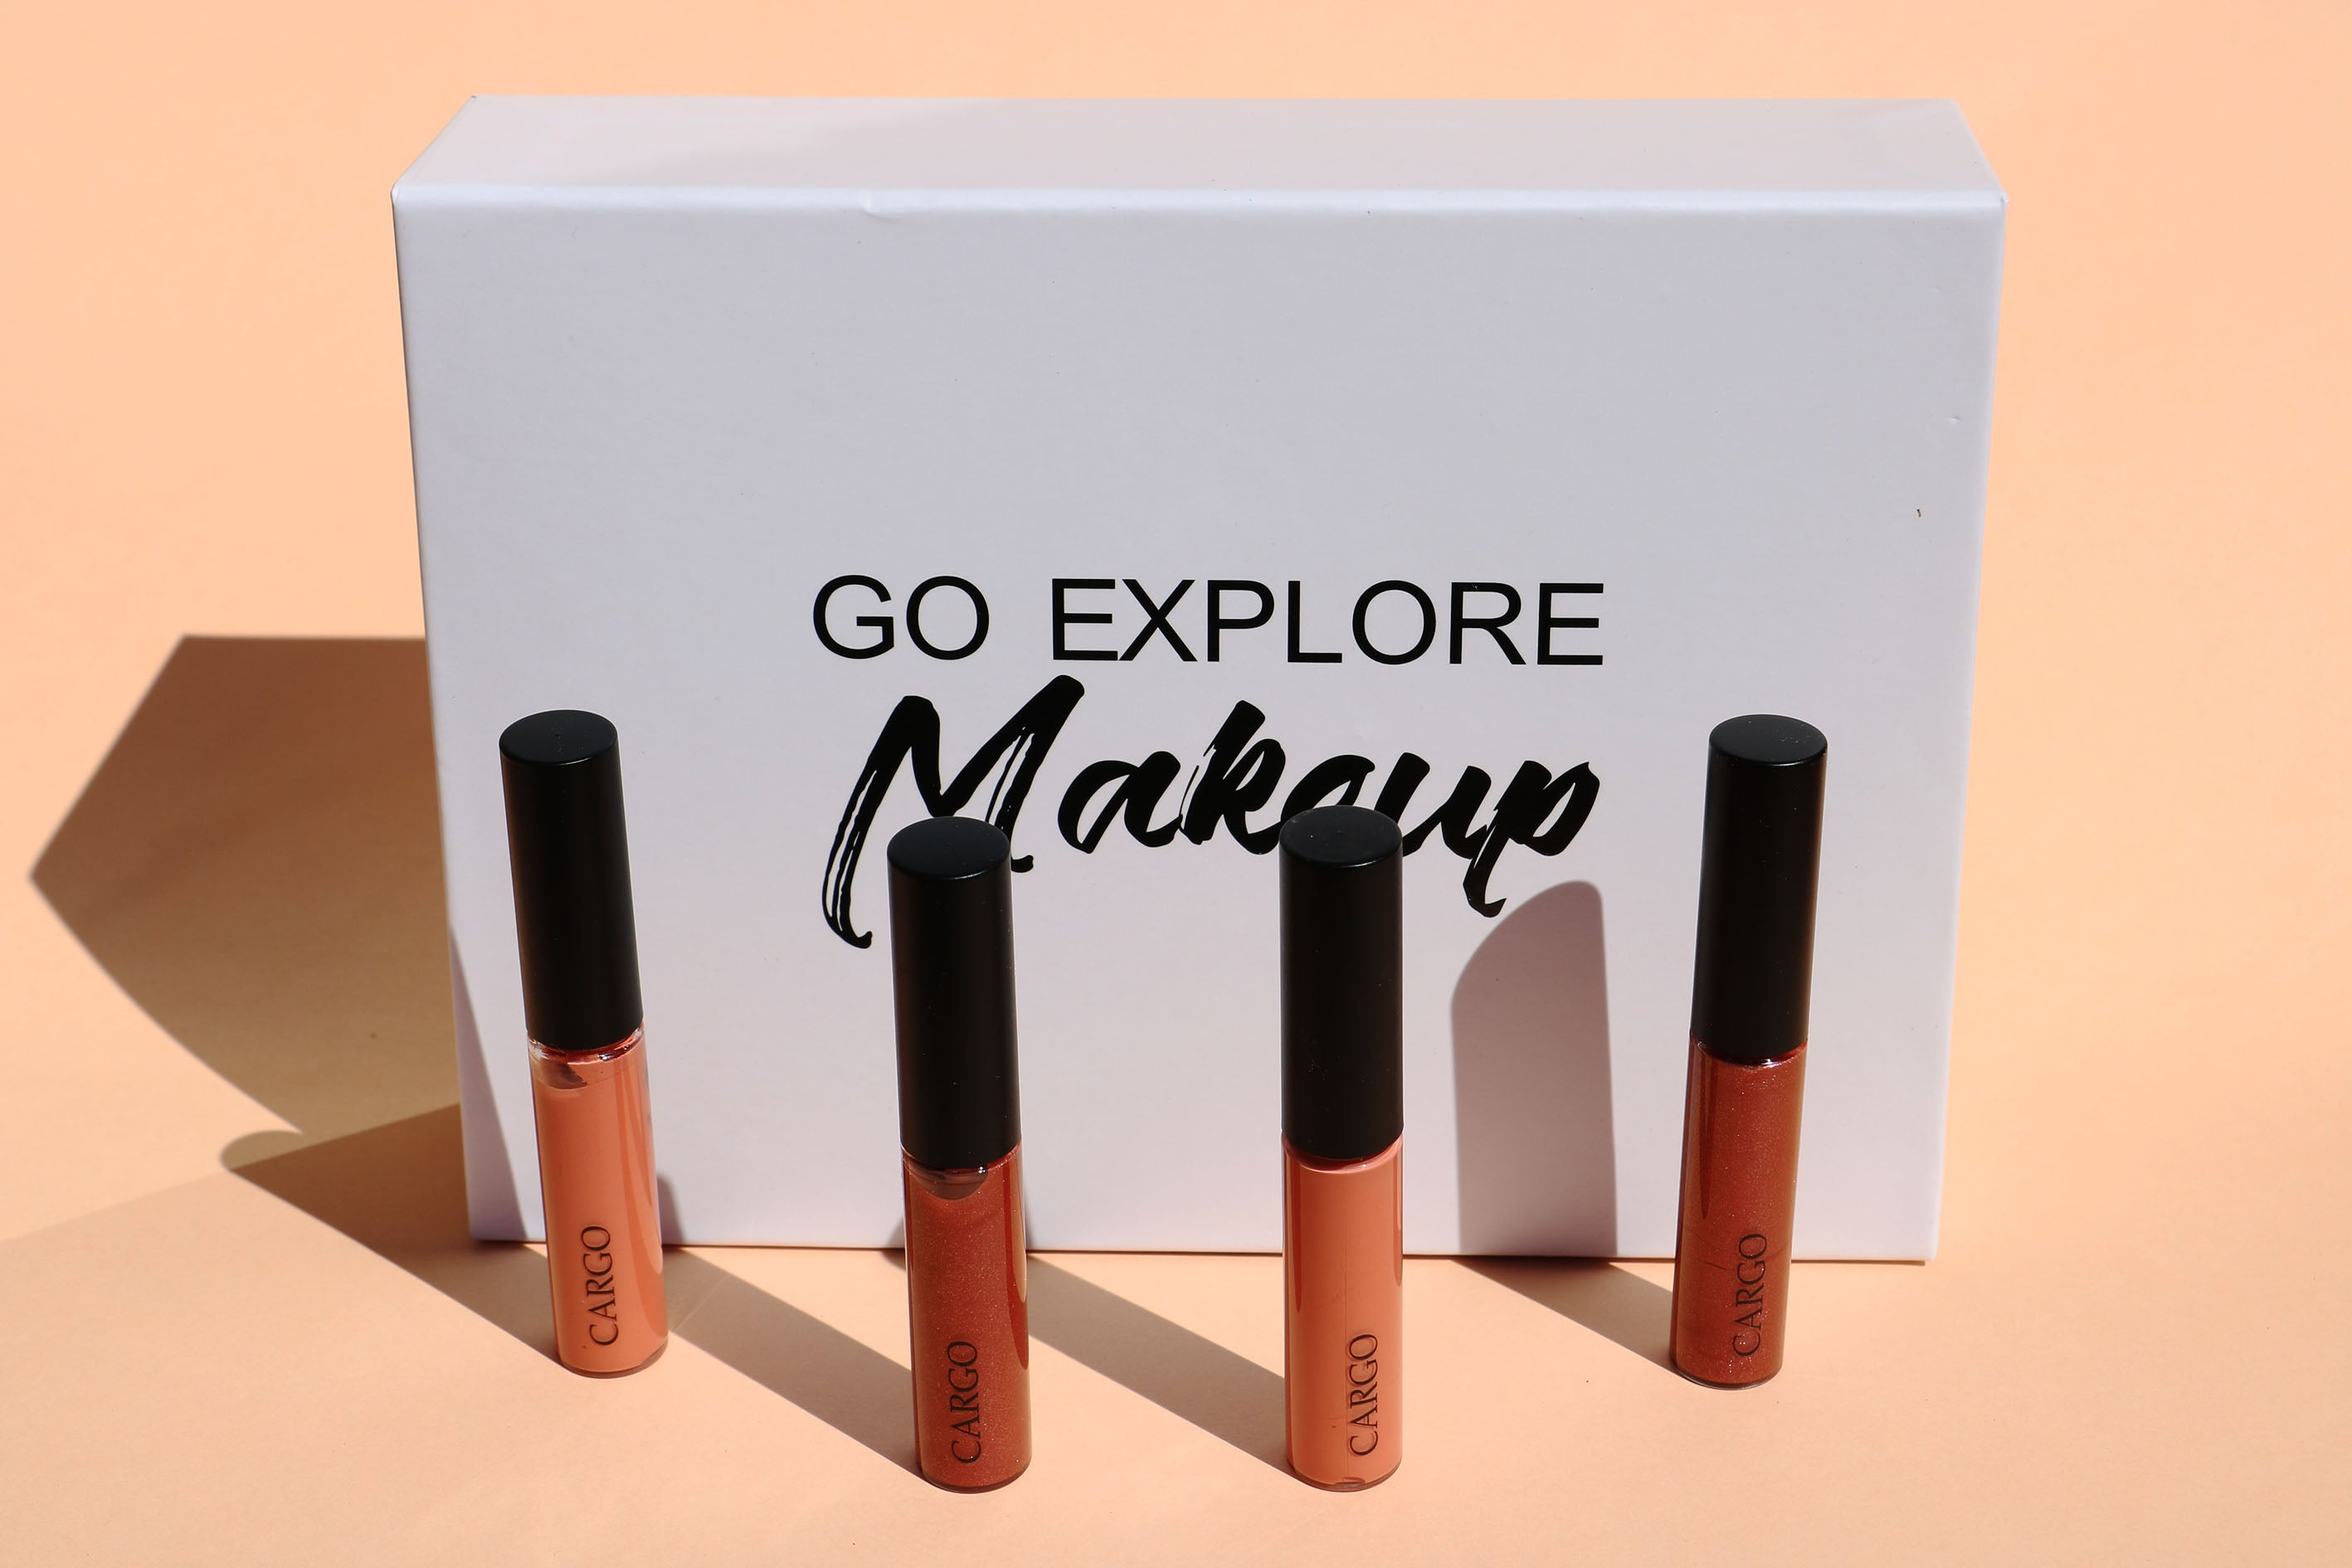 Go Explore Makeup x Cargo Cosmetics